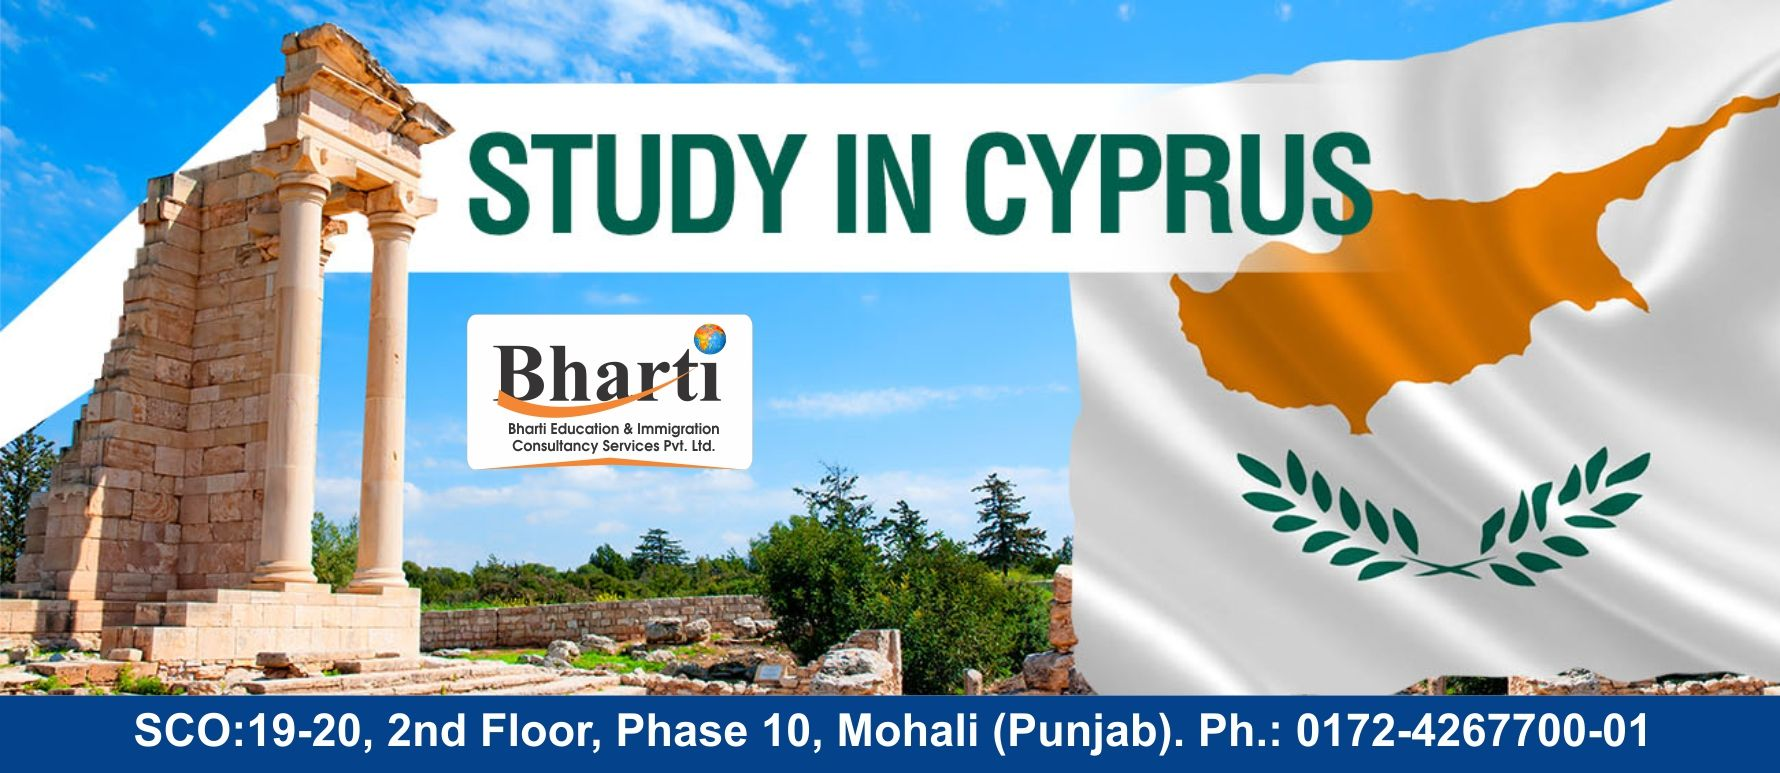 Want to Study in Cyprus?  Contact Bharti Immigration Consultancy Best Immigration Consultancy http://bhartigroup.in/  #Bharti #immigration #Bhartiimmigration #chandigarh #bestimmigrationConsultancy #studyvisa #study #visa #abroad #touristvisa #businessvisa #america #Australia #abroadvisa #newzeland #usa #canada #cyprus #singapore #tourist #immigrationservices #studyabroad #visaservice #visaconsultant #number1 #company #best #mohali #US #UK